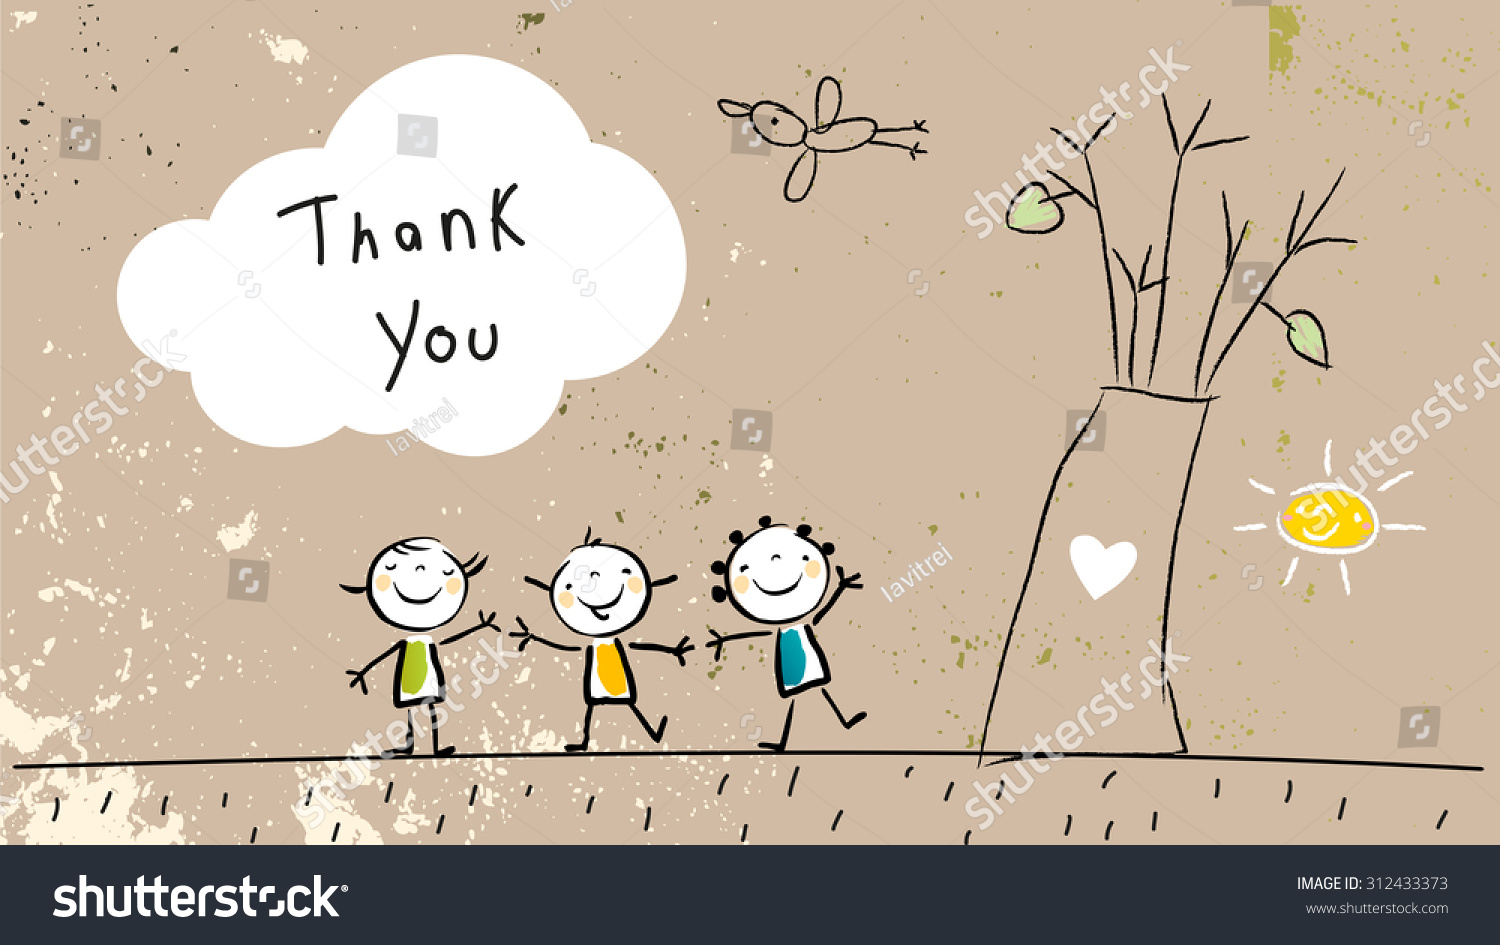 Thank you card with happy kids group near tree saying thank you in a cloud Cartoon sketch doodle vector illustration